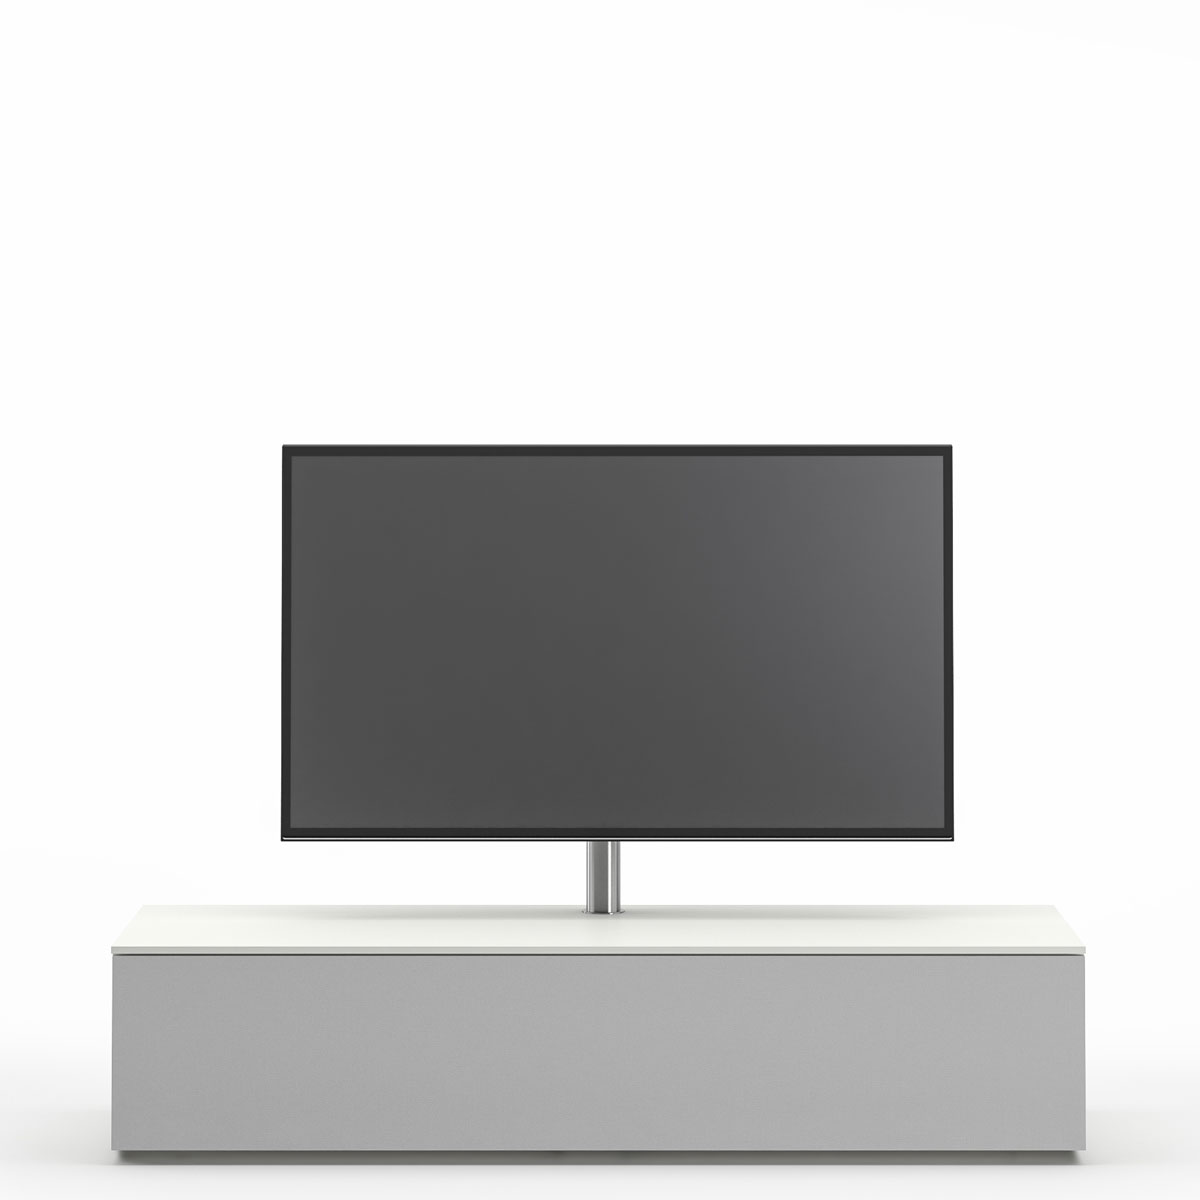 Hifi, TV, Möbel, Soundbar, Phonoschrank mit Klappe, mit Dockingstation, mit smart charge Funktion, Akustikstoff bespannte Front, mit Drehhalterung für Ihren Fernseher, Spectral, Next, Sideboard, Audio, Media,